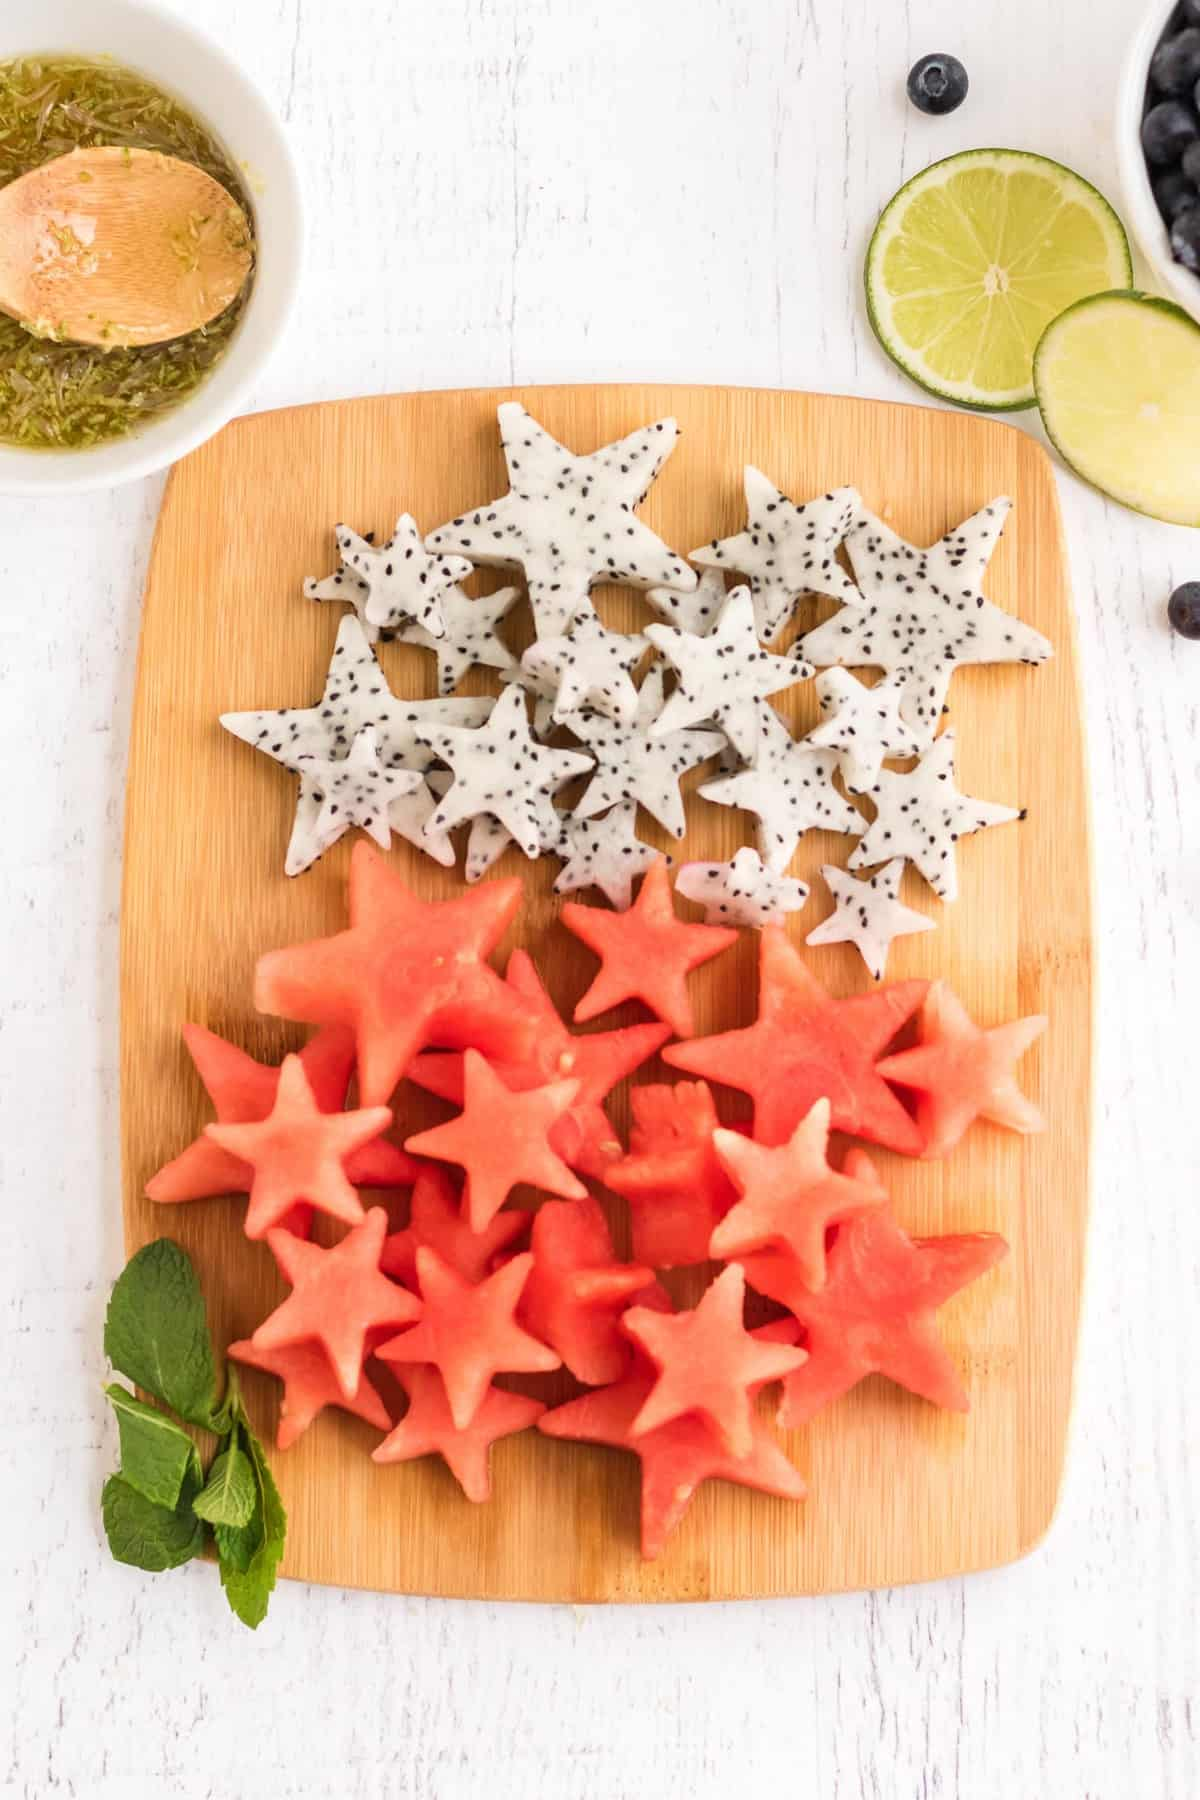 Watermelon and dragon fruit cut into star shapes.